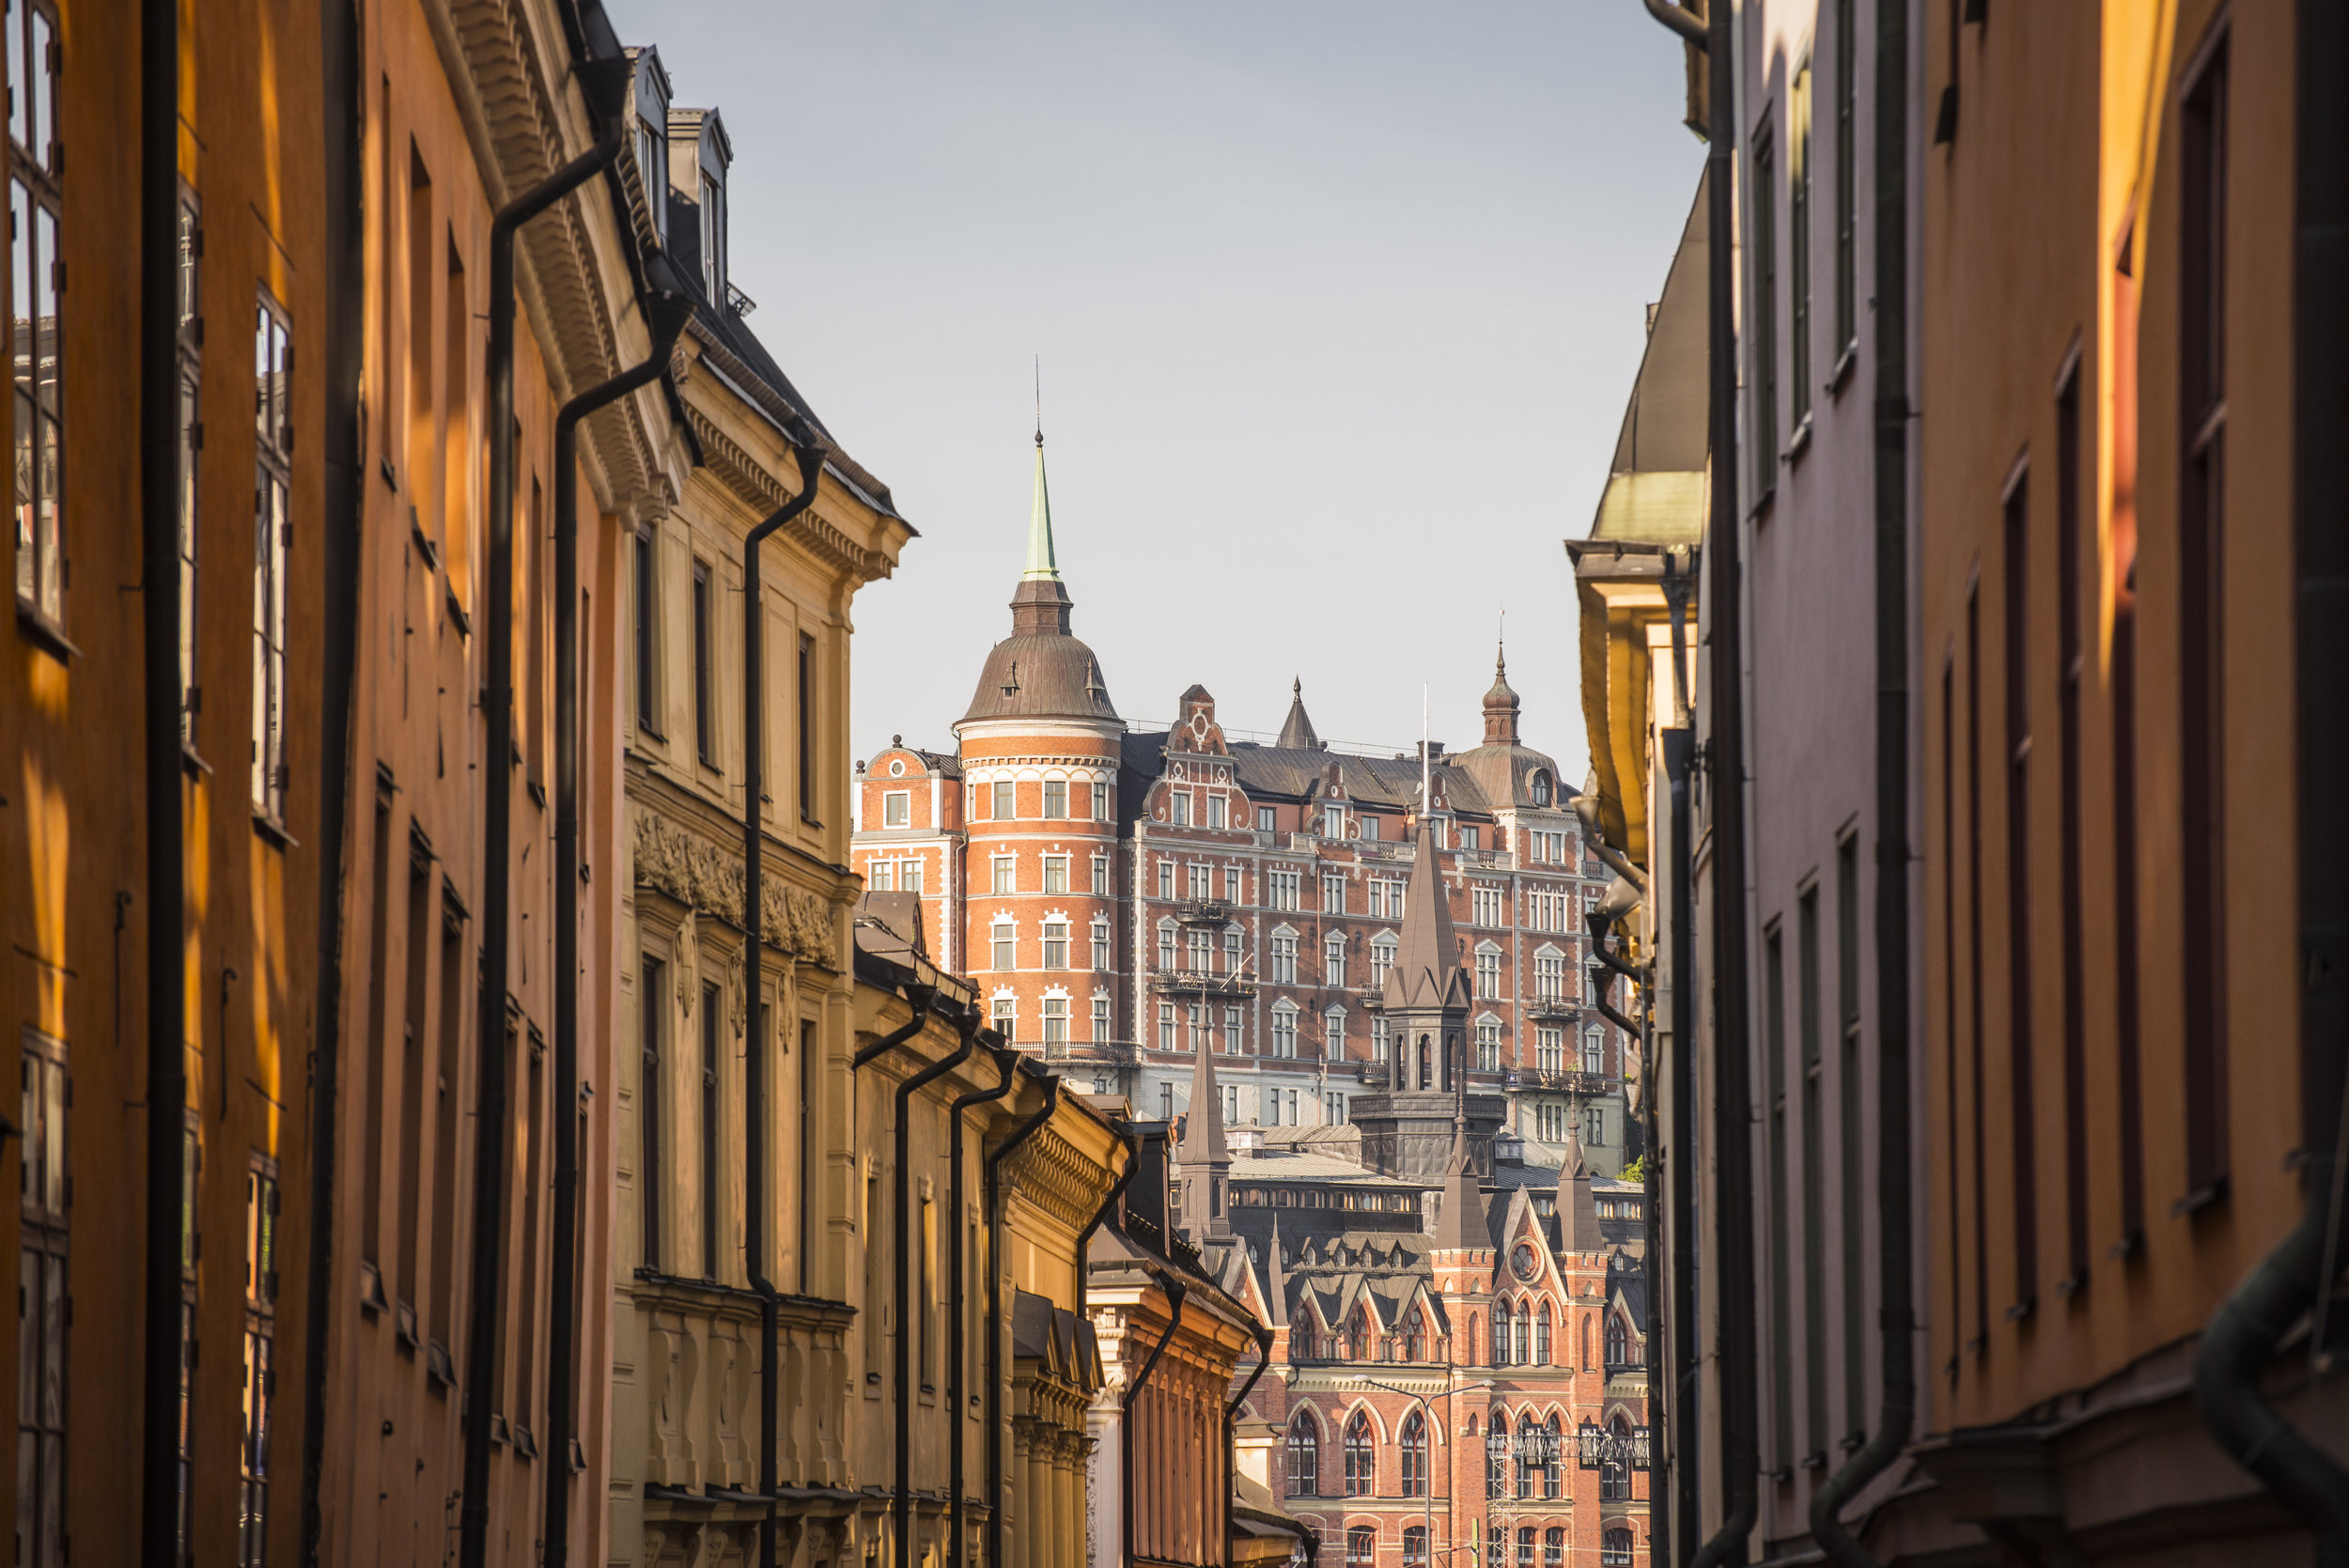 Mariaberghet from Gamla Stan